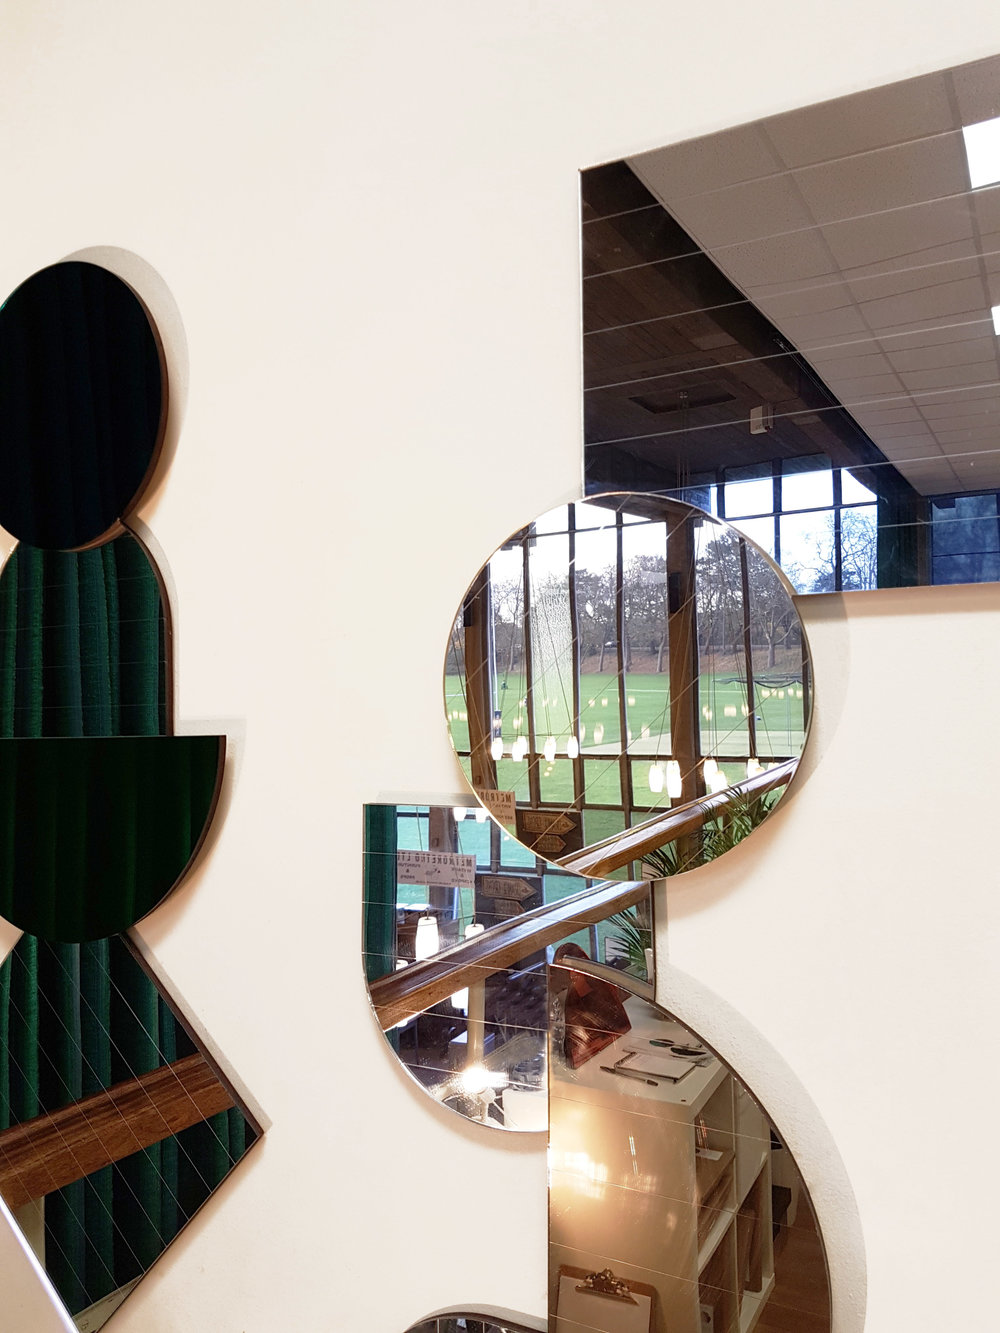 LAYER MIRRORS - Stunning Mid Century chandeliers hanging in the hall at Dulwich college and reflected in the Layer Mirrors in metallic's.